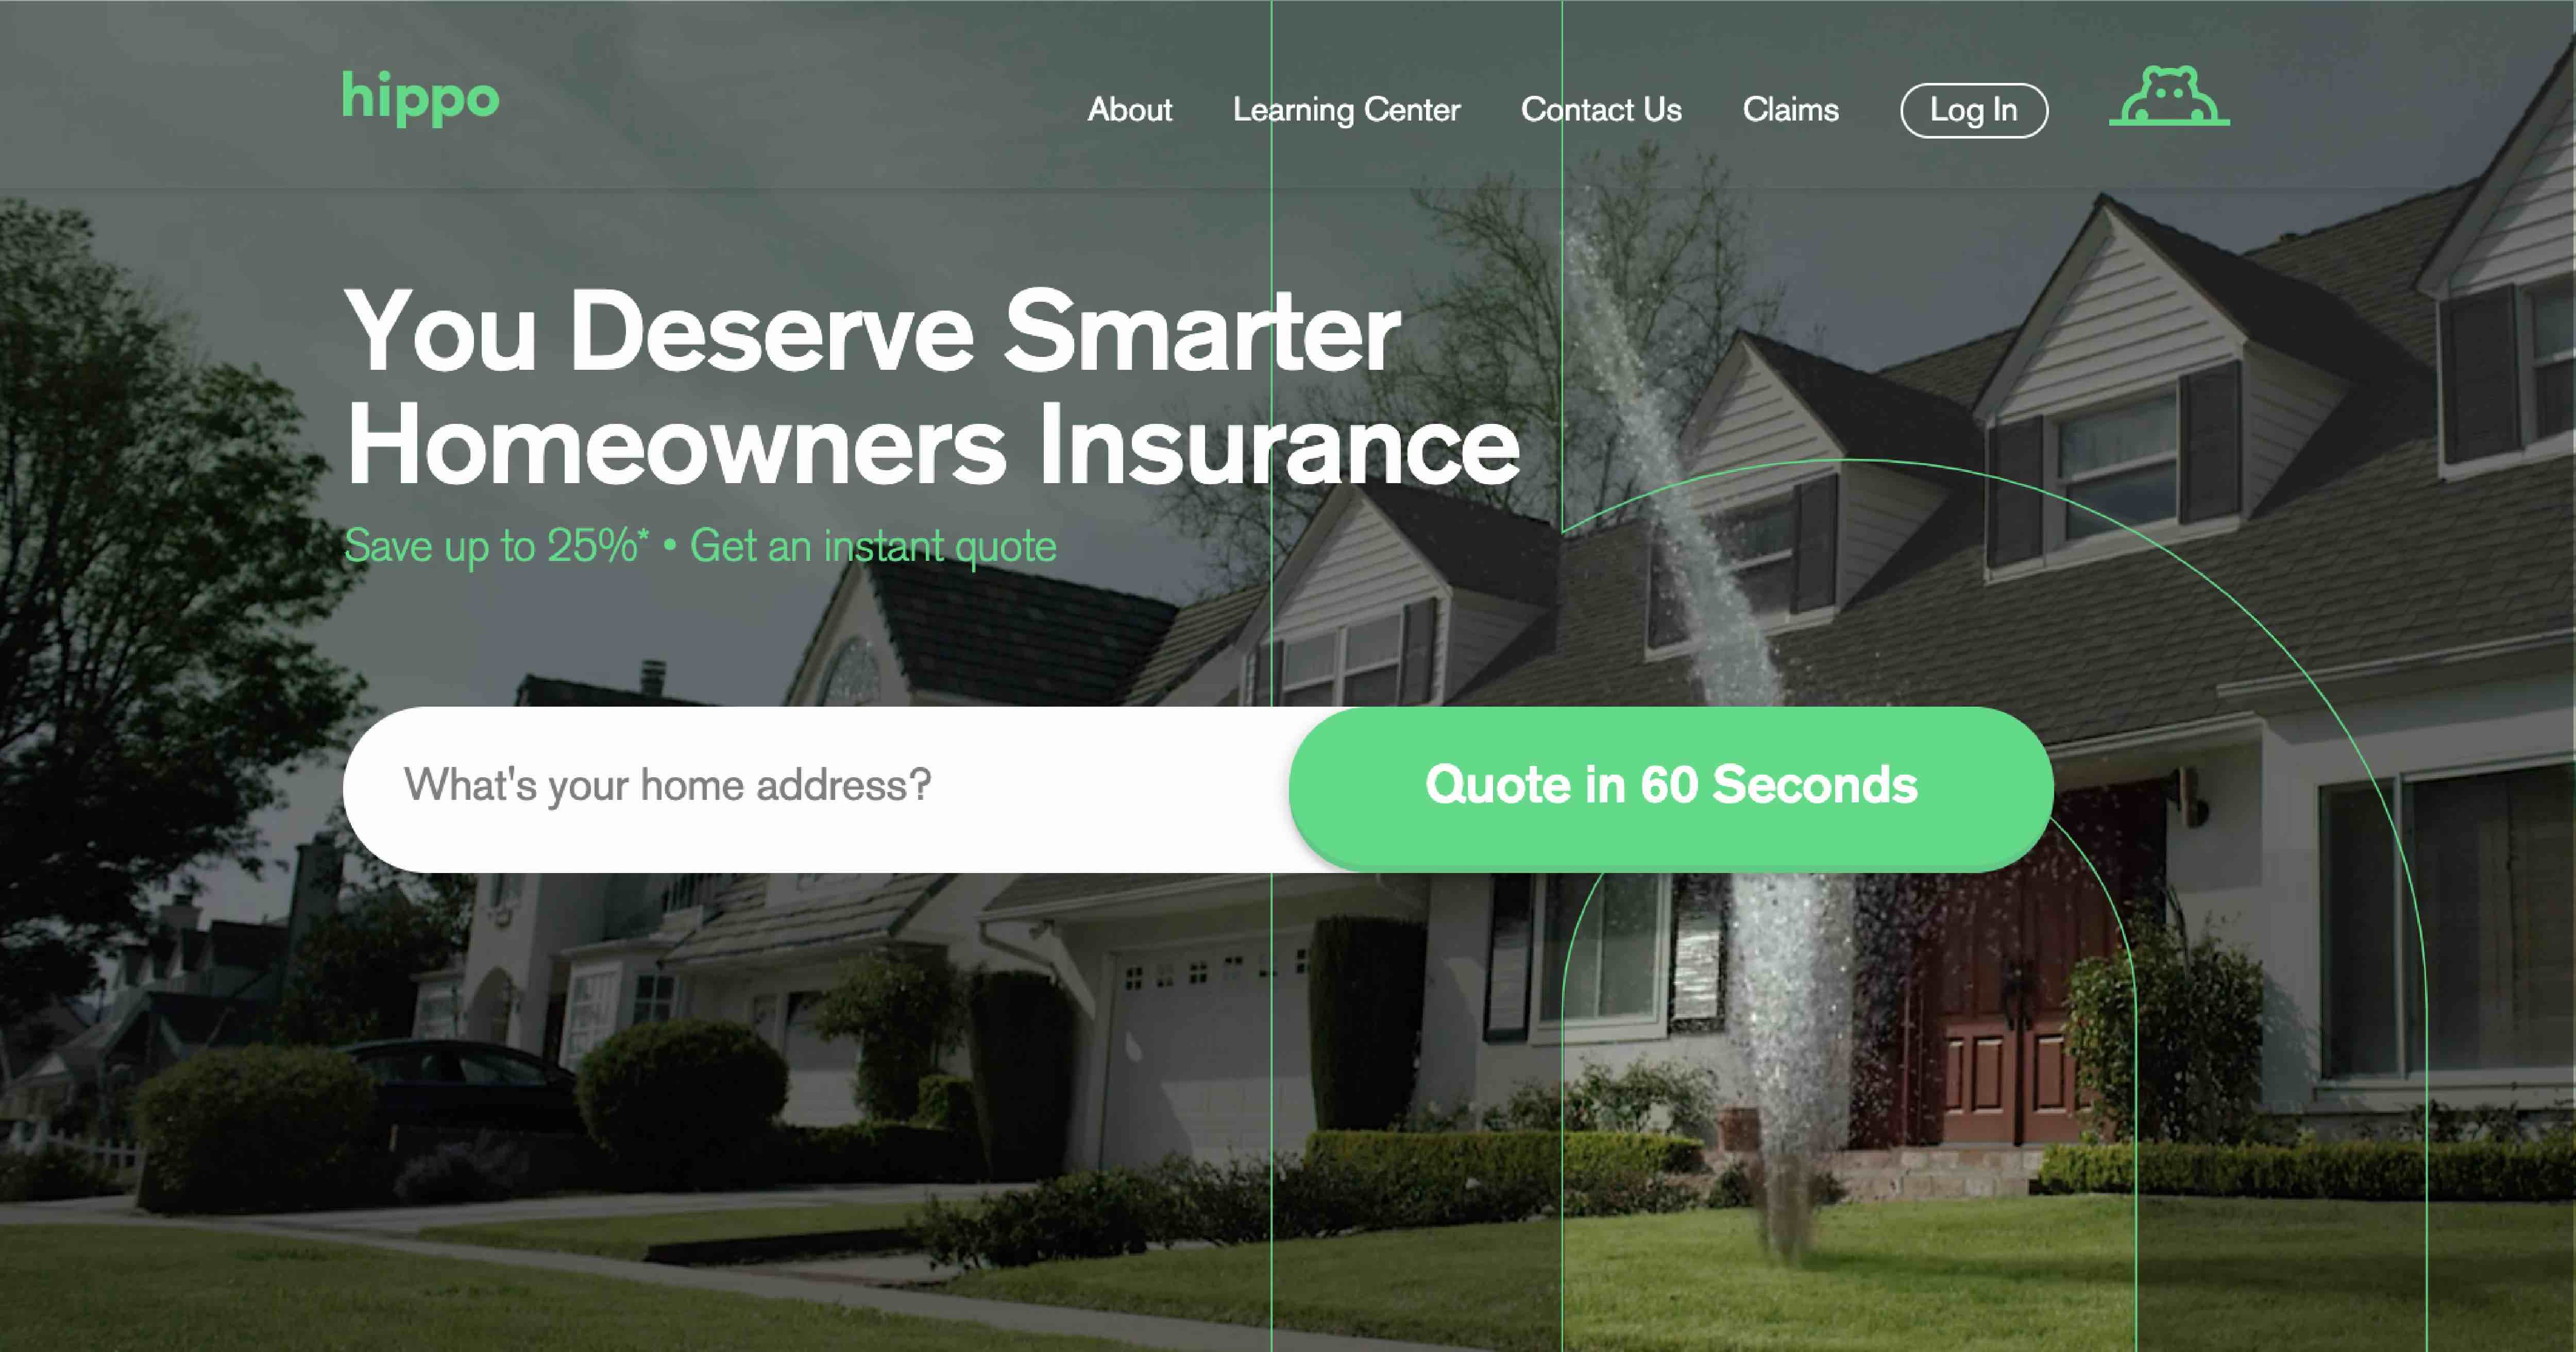 Homeowners Insurance Get A Quote In 60 Seconds Hippo